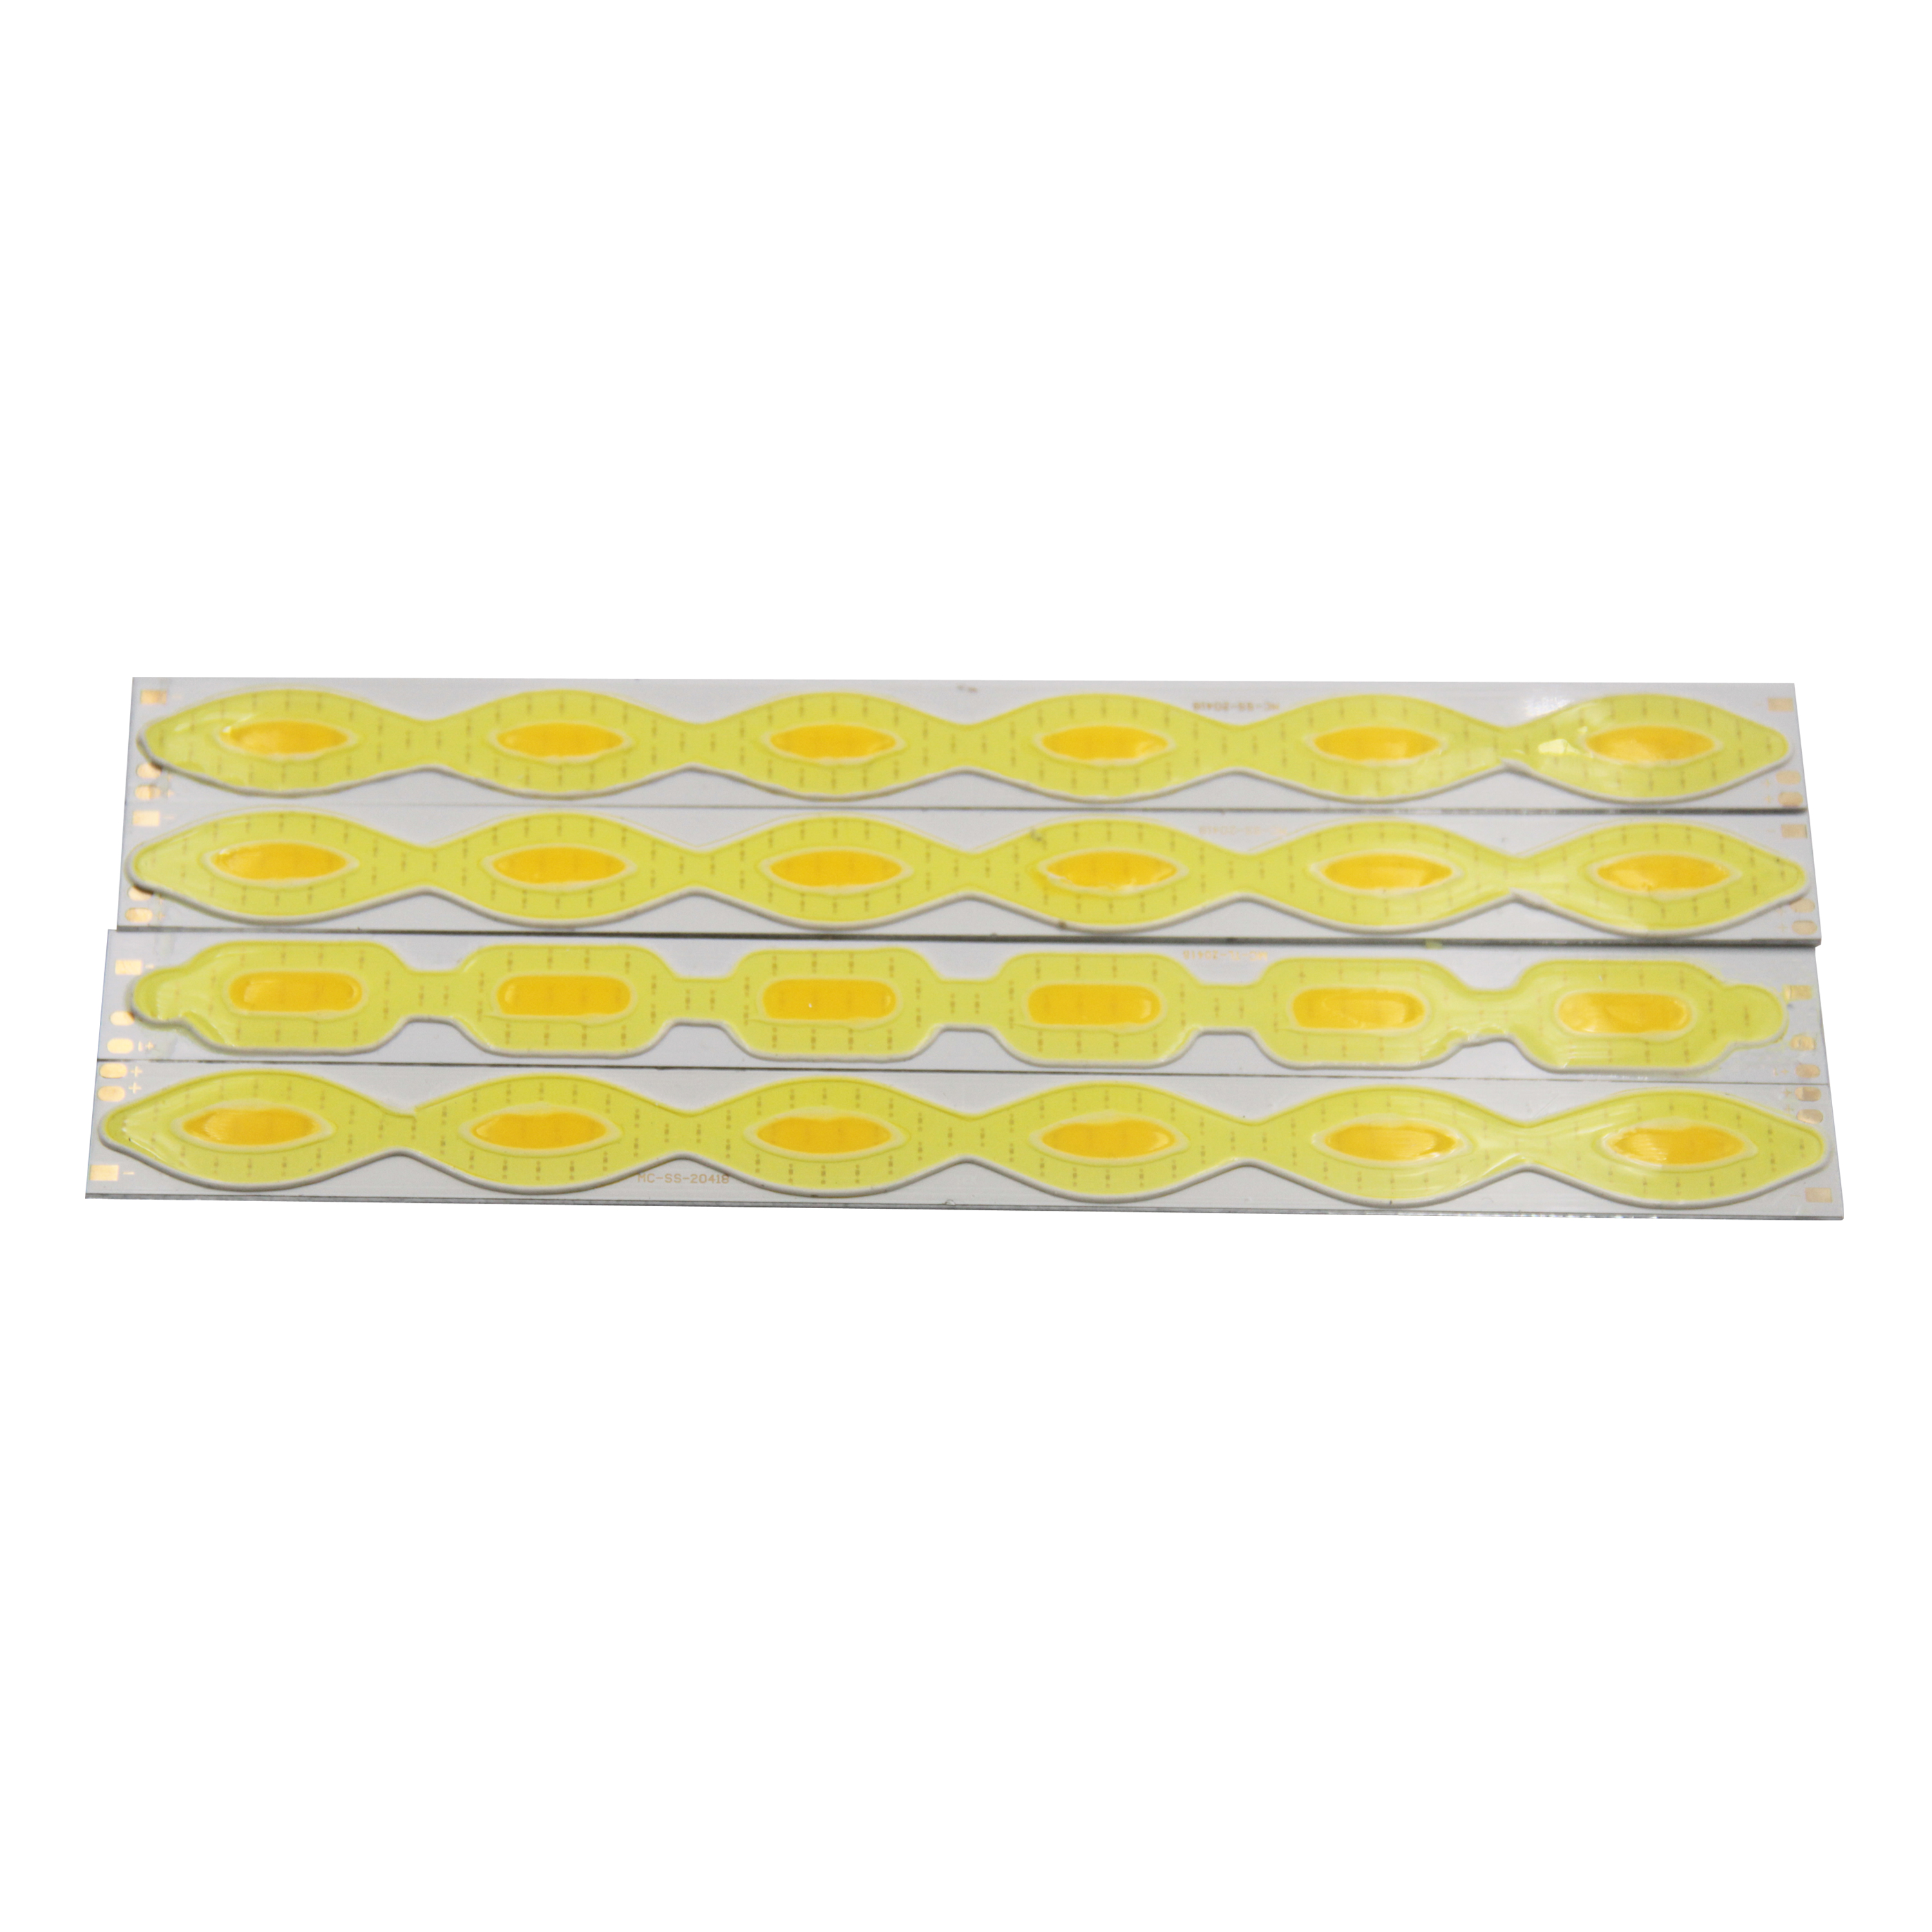 Купить с кэшбэком 204mm 18mm 12v led cob chip strip bar light lamp source double color yellow cold white led cob bulb for diy auto running light